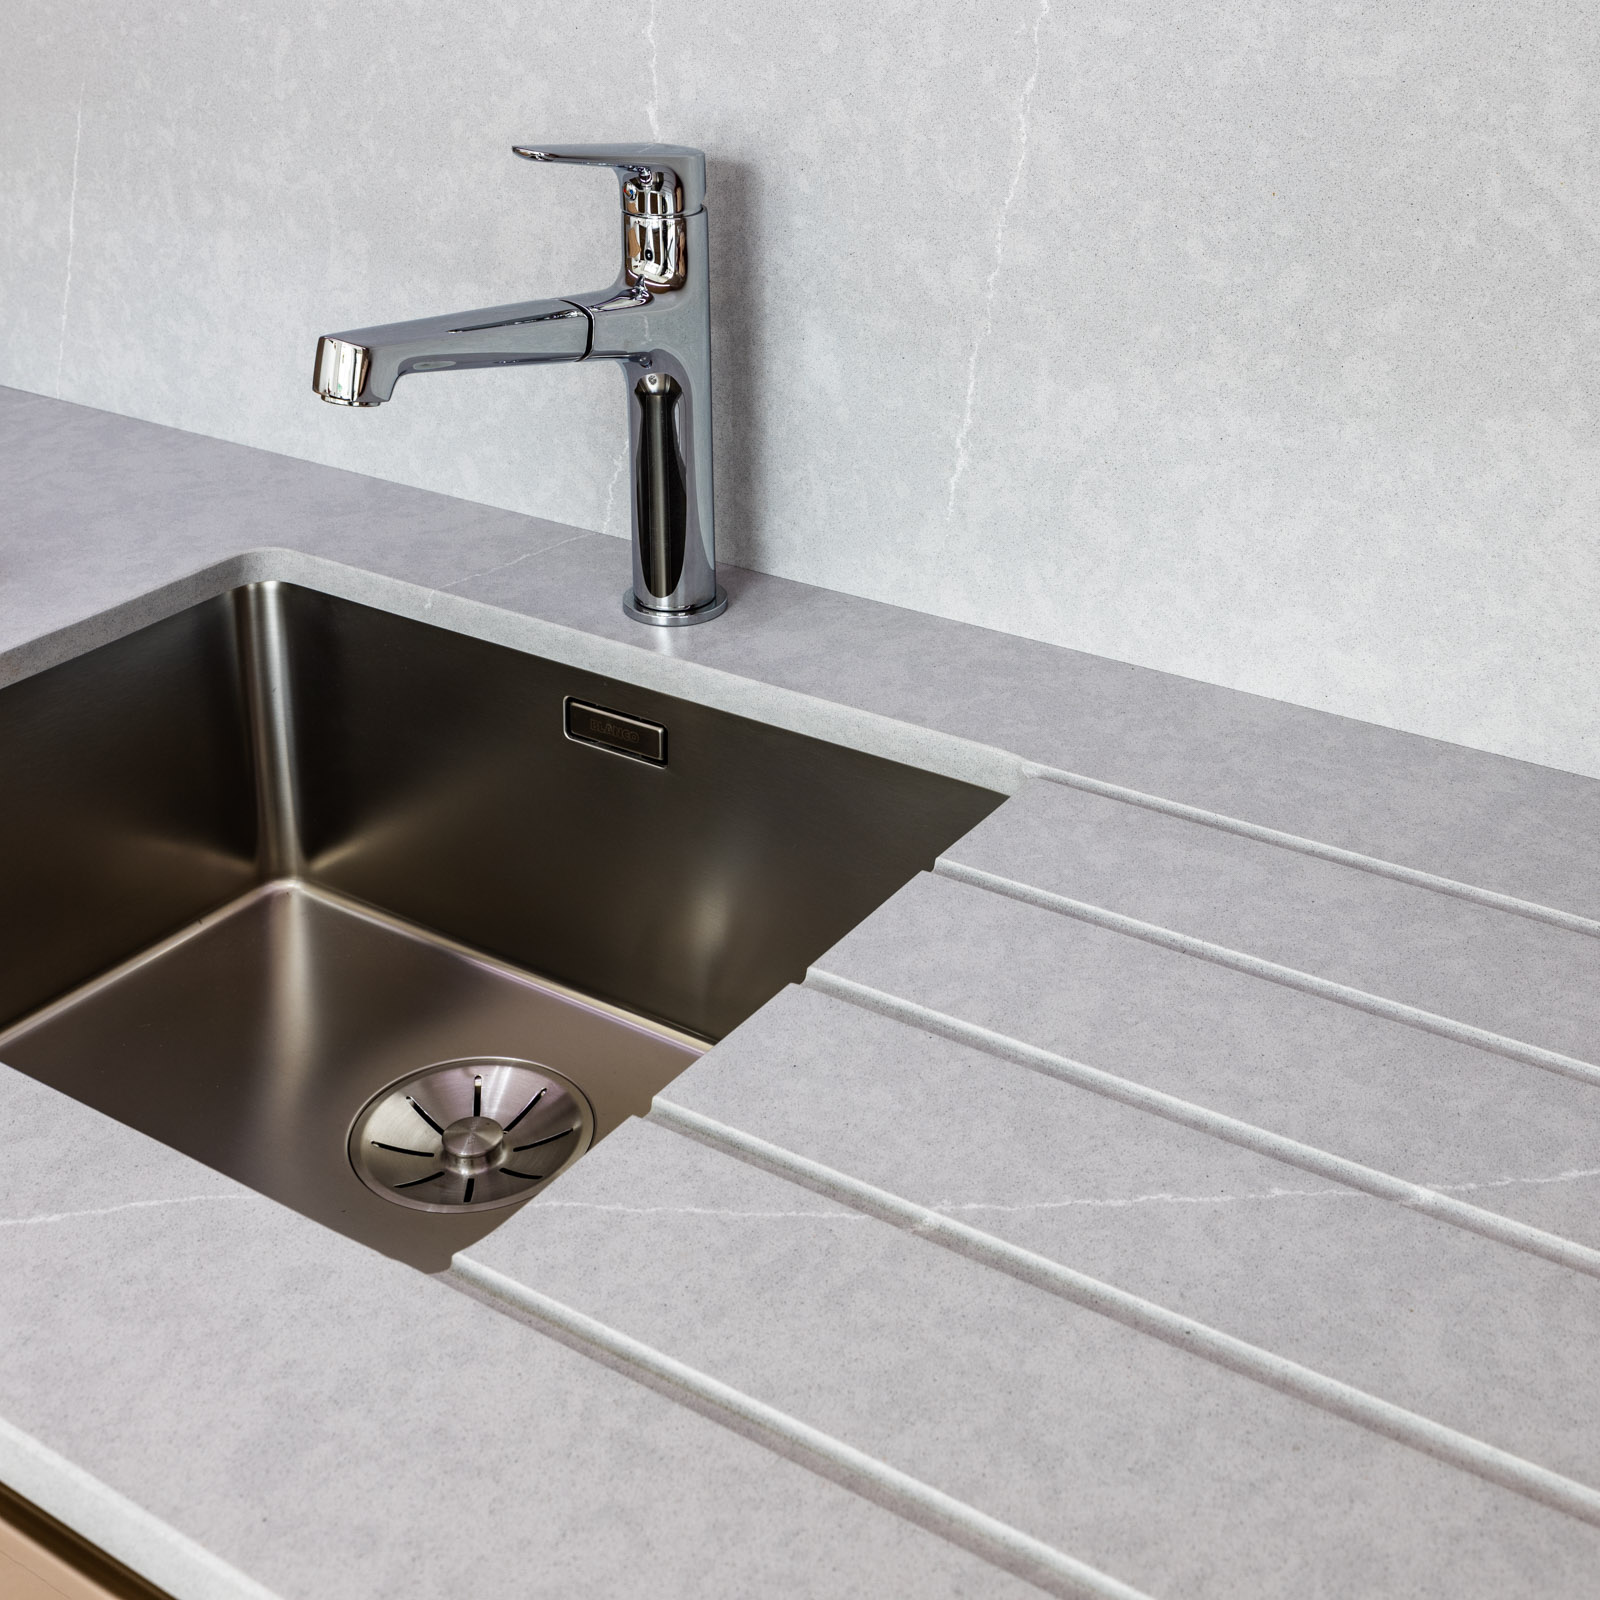 Drainer grooves in worktop and undermount sink